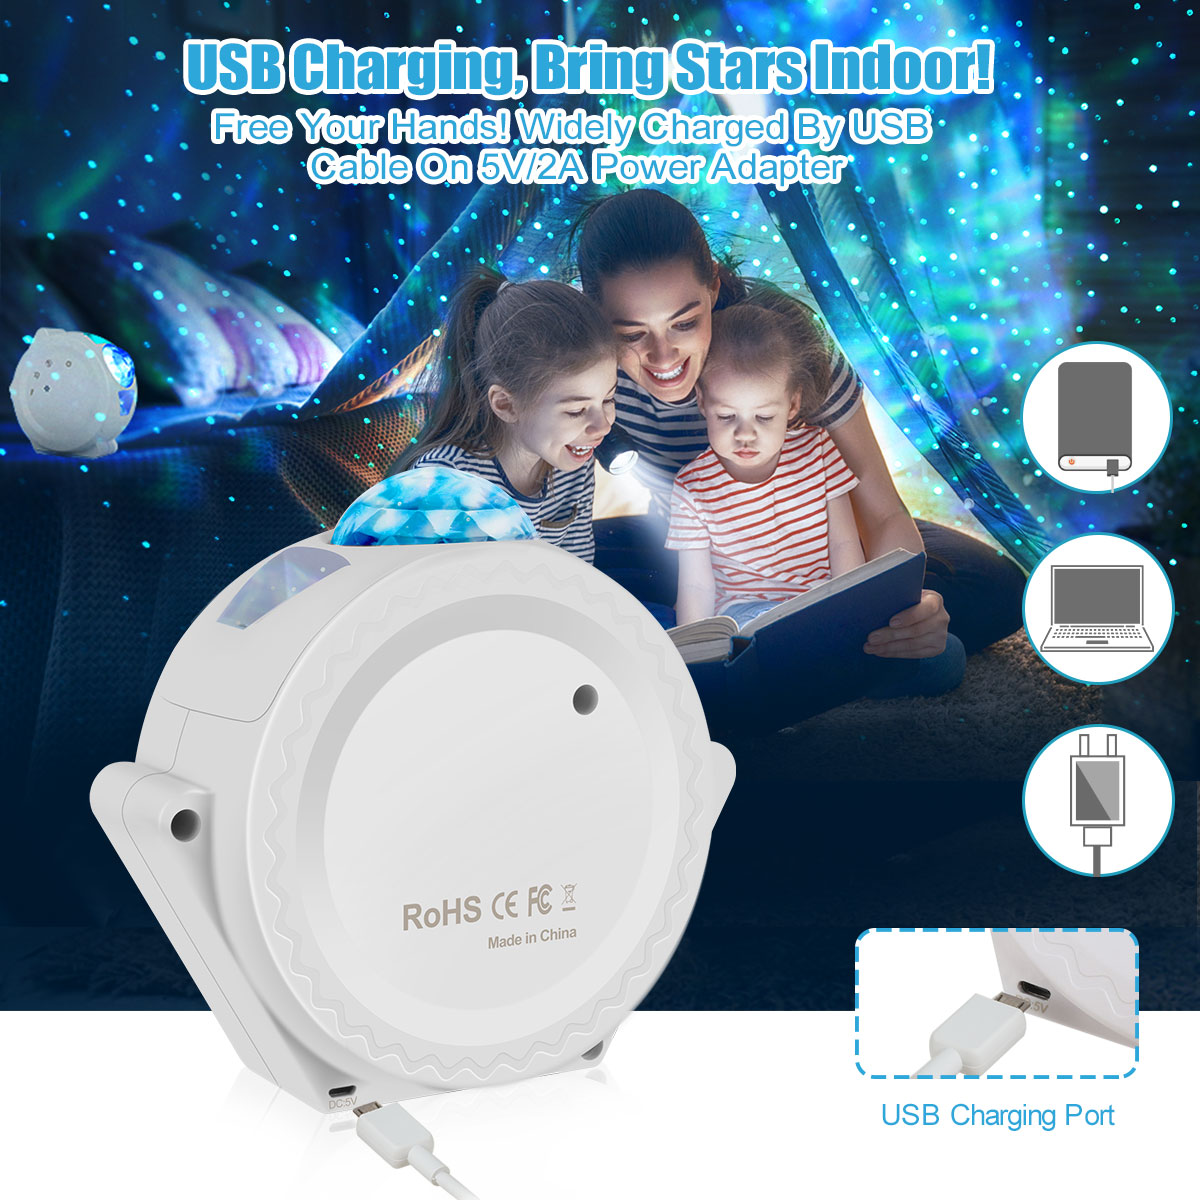 LED Starry Sky Projector Light 360 Degree Rotation Nebula Cloud Night Light 6 Colors Ocean Waving Light Best Gift For Kids